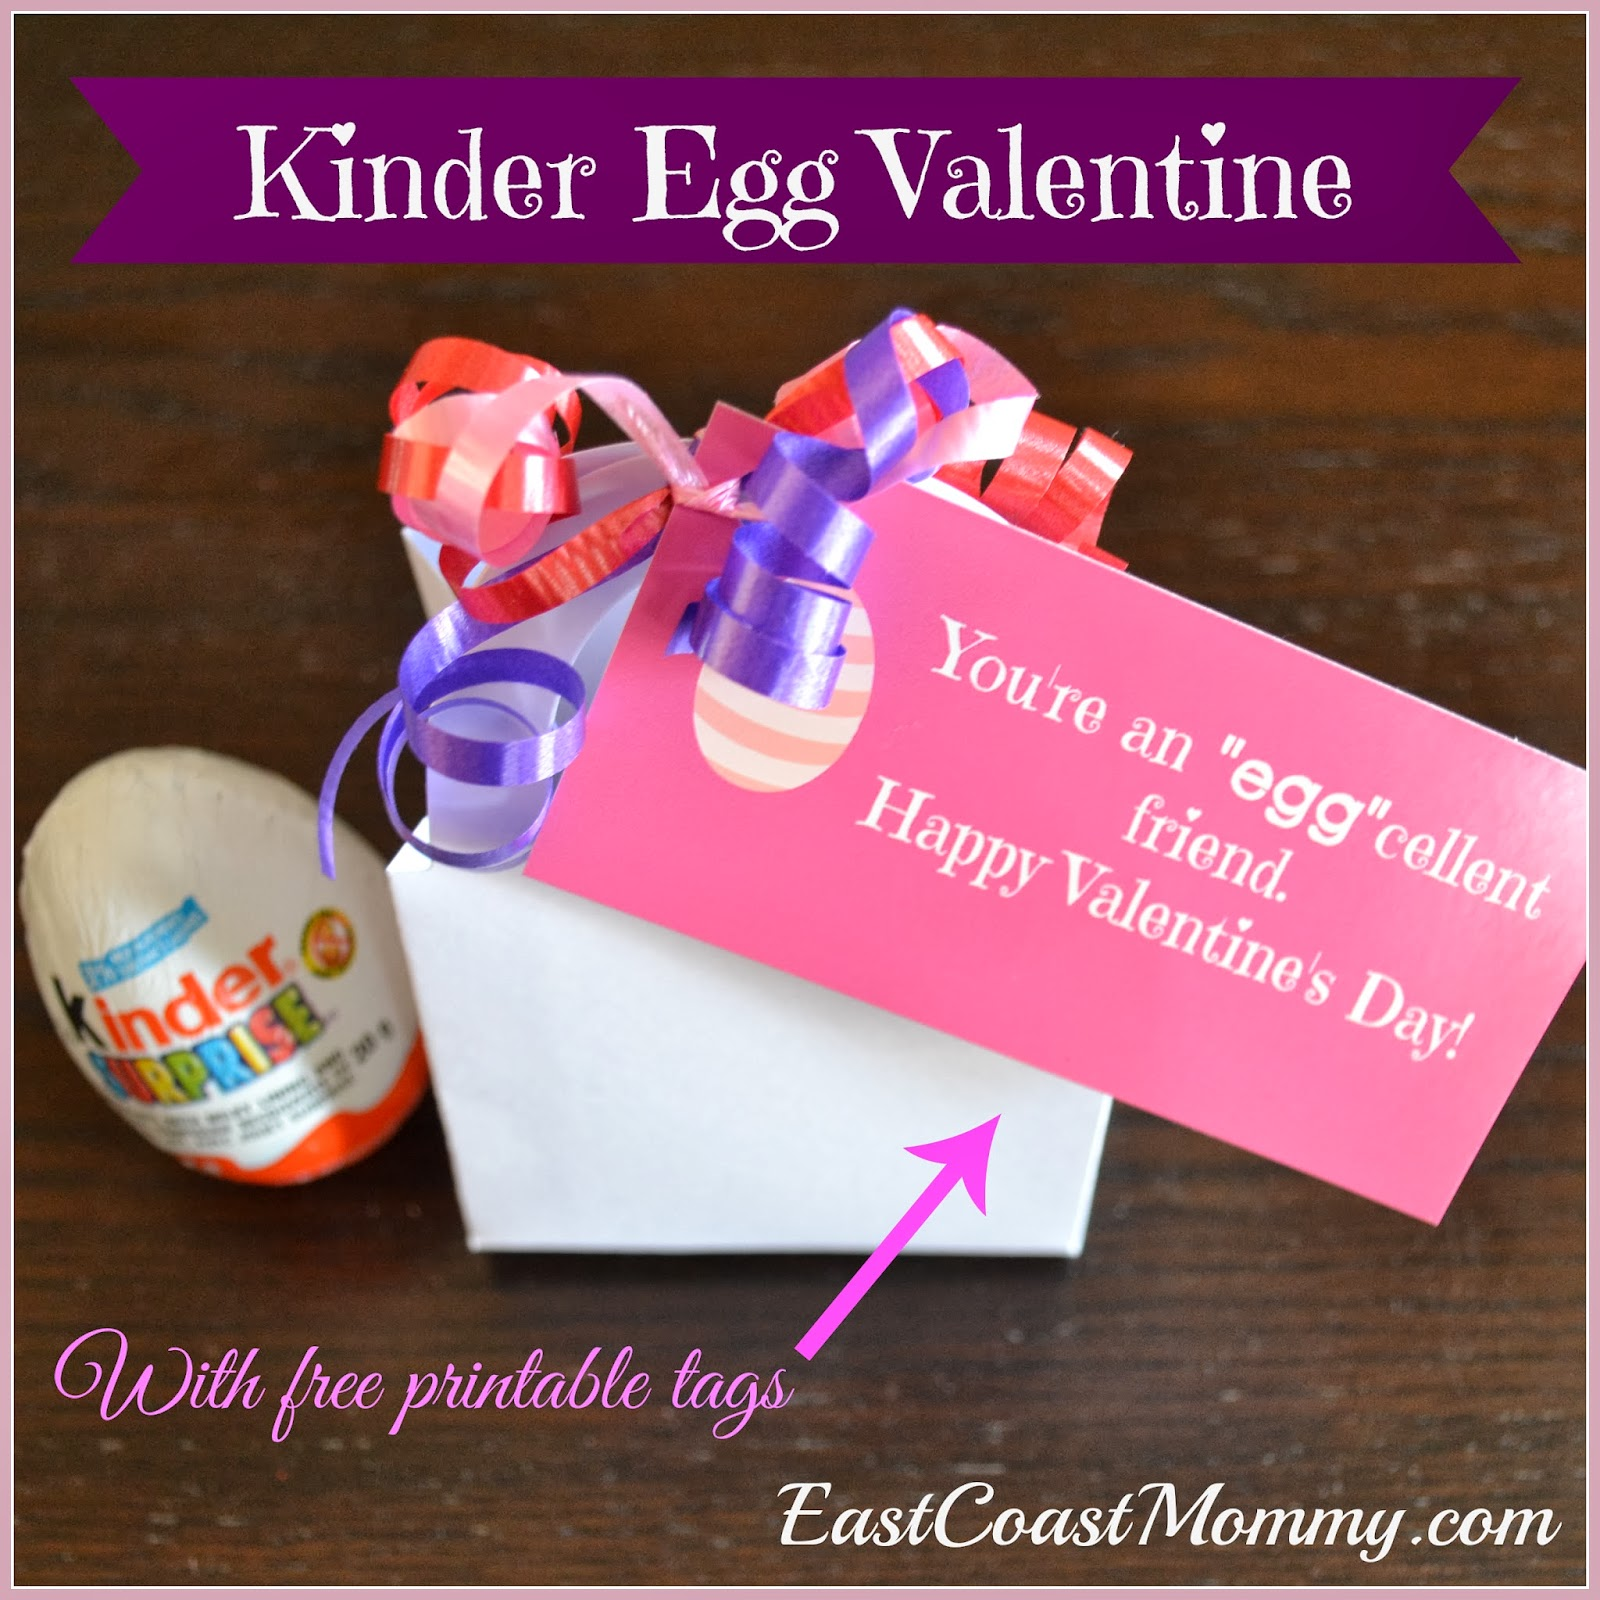 East Coast Mommy: Kinder Valentines... and a chance to win